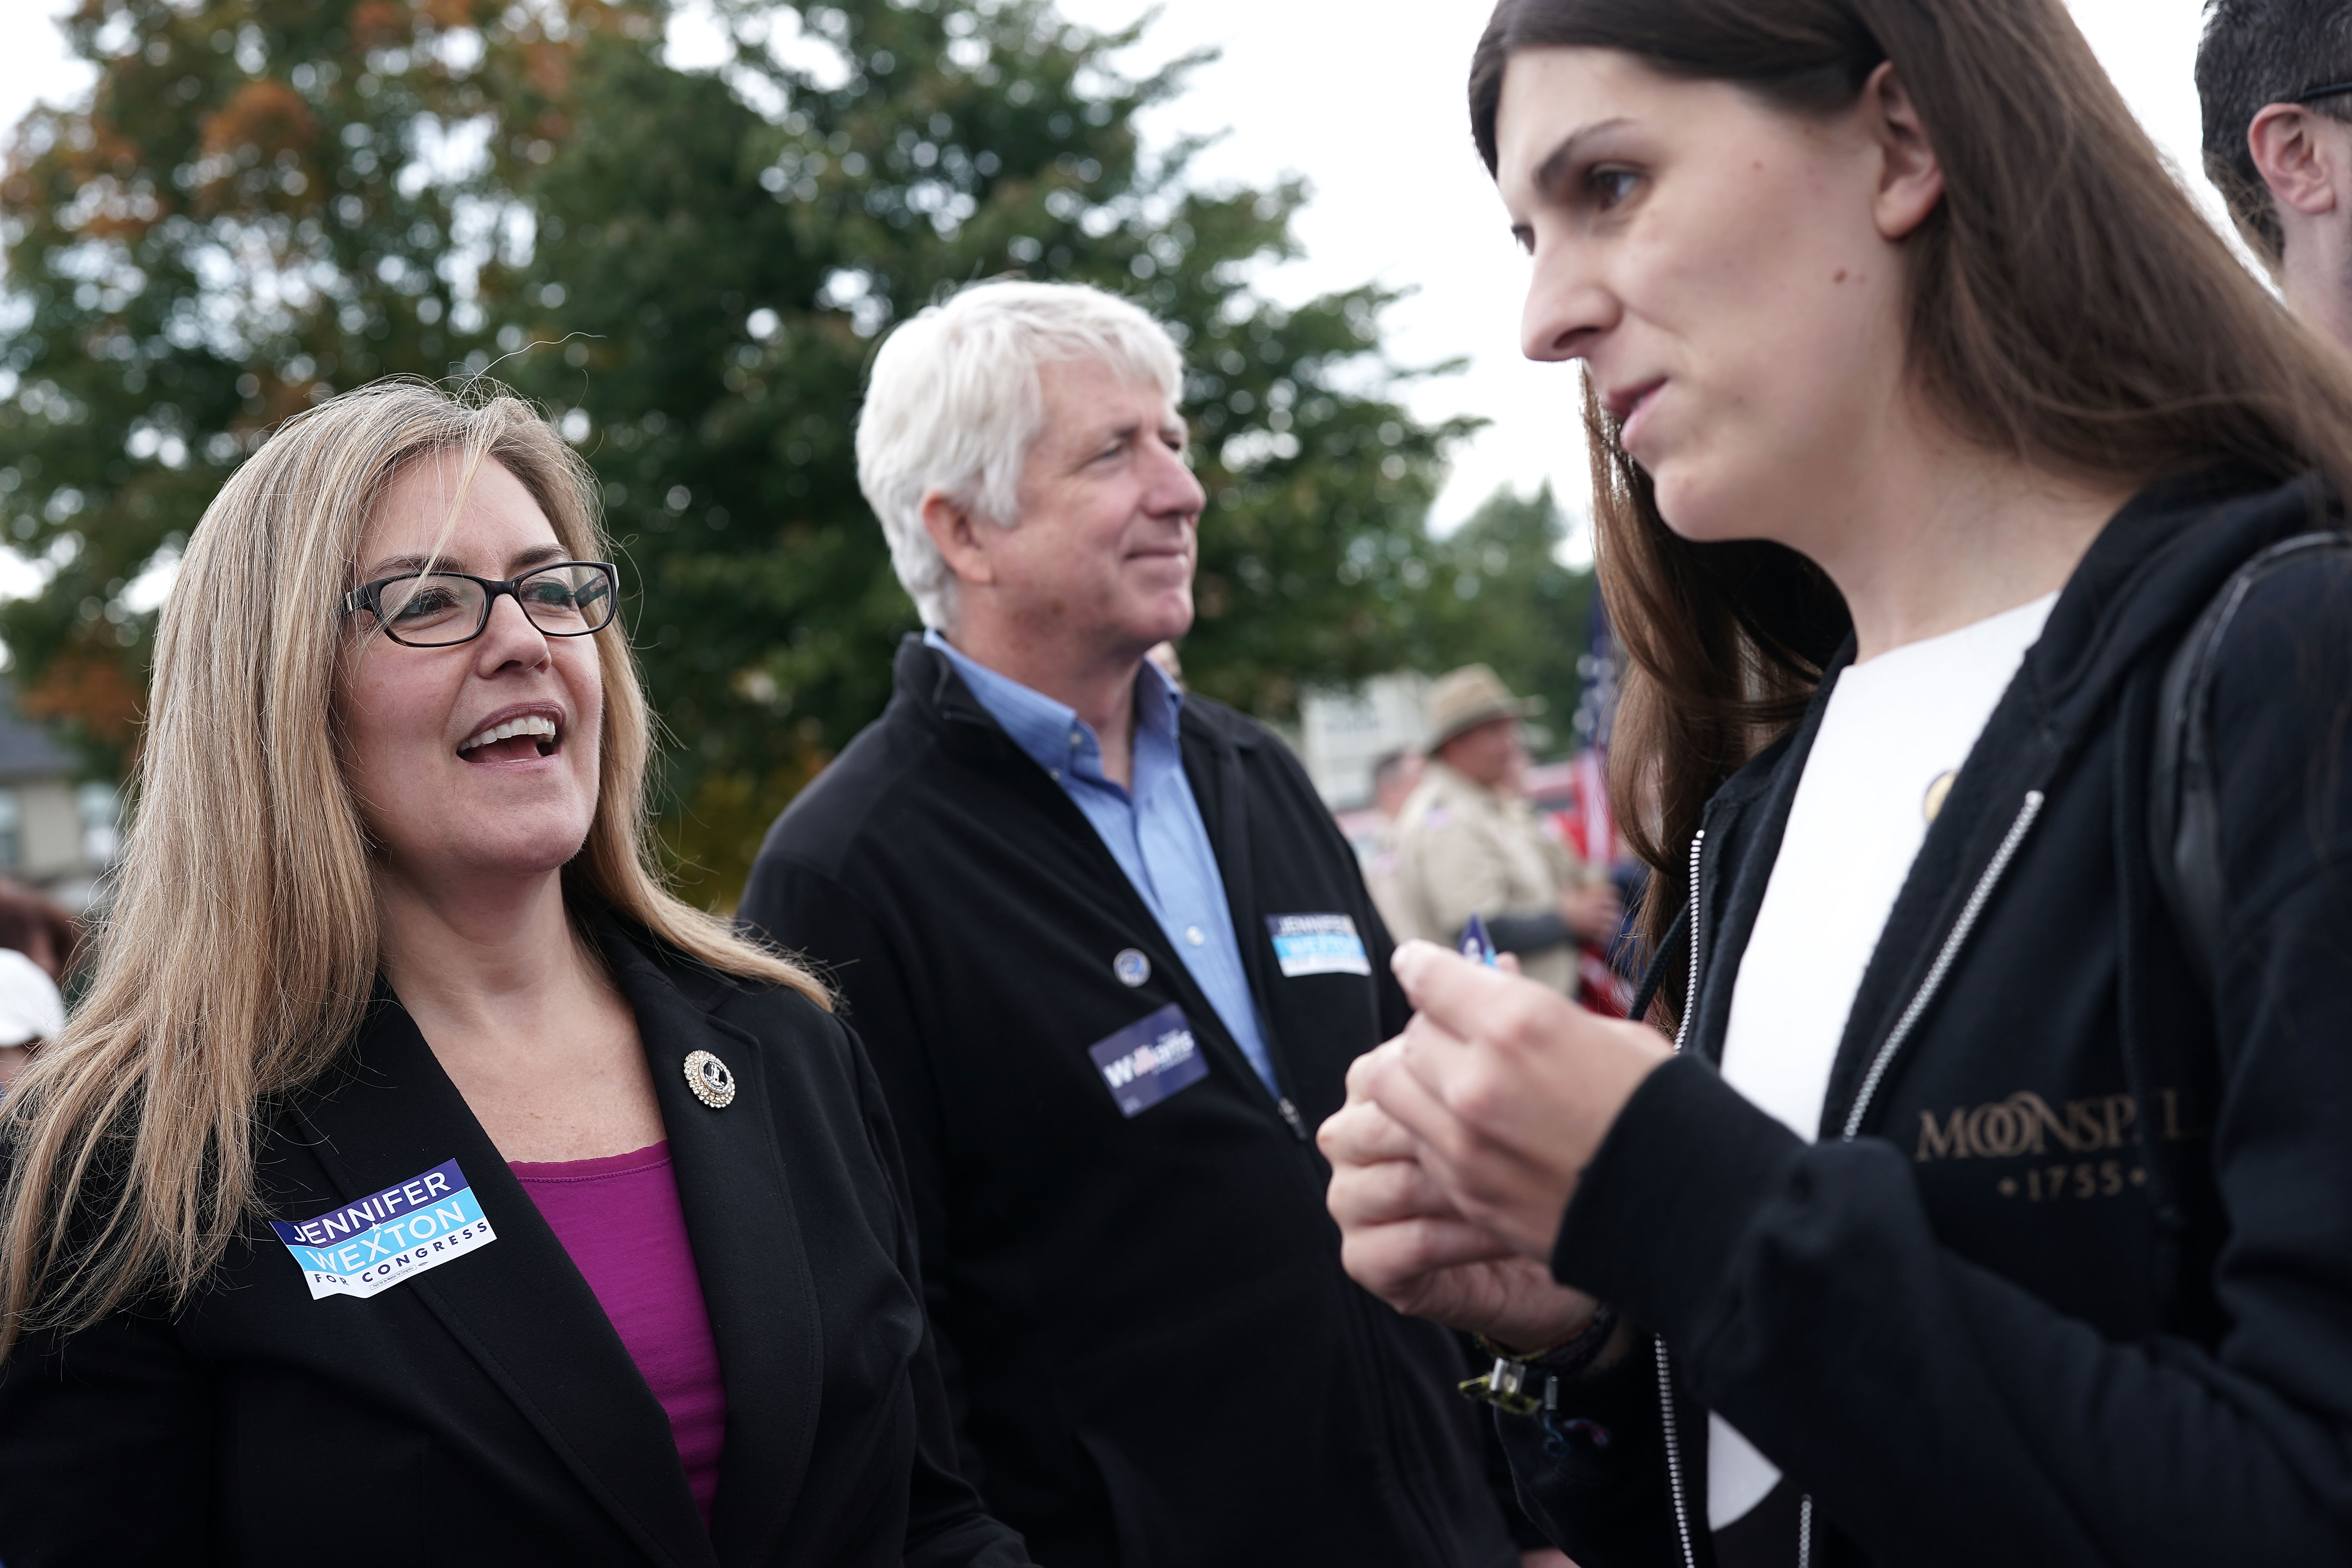 HAYMARKET, VA - OCTOBER 20: (L-R) Democratic U.S. House candidate and Virginia State Sen. Jennifer Wexton (D-33rd District), Virginia State Attorney General Mark Herring (C), and Virginia State Delegate Danica Roem (D-13th District) participate in the annual Haymarket Day parade October 20, 2018 in Haymarket, Virginia. Wexton is challenging incumbent Rep. Barbara Comstock (R-VA) for the House seat that has been in Republican hands since 1981. Wexton is currently leading Comstock in the polls. (Photo by Alex Wong/Getty Images)